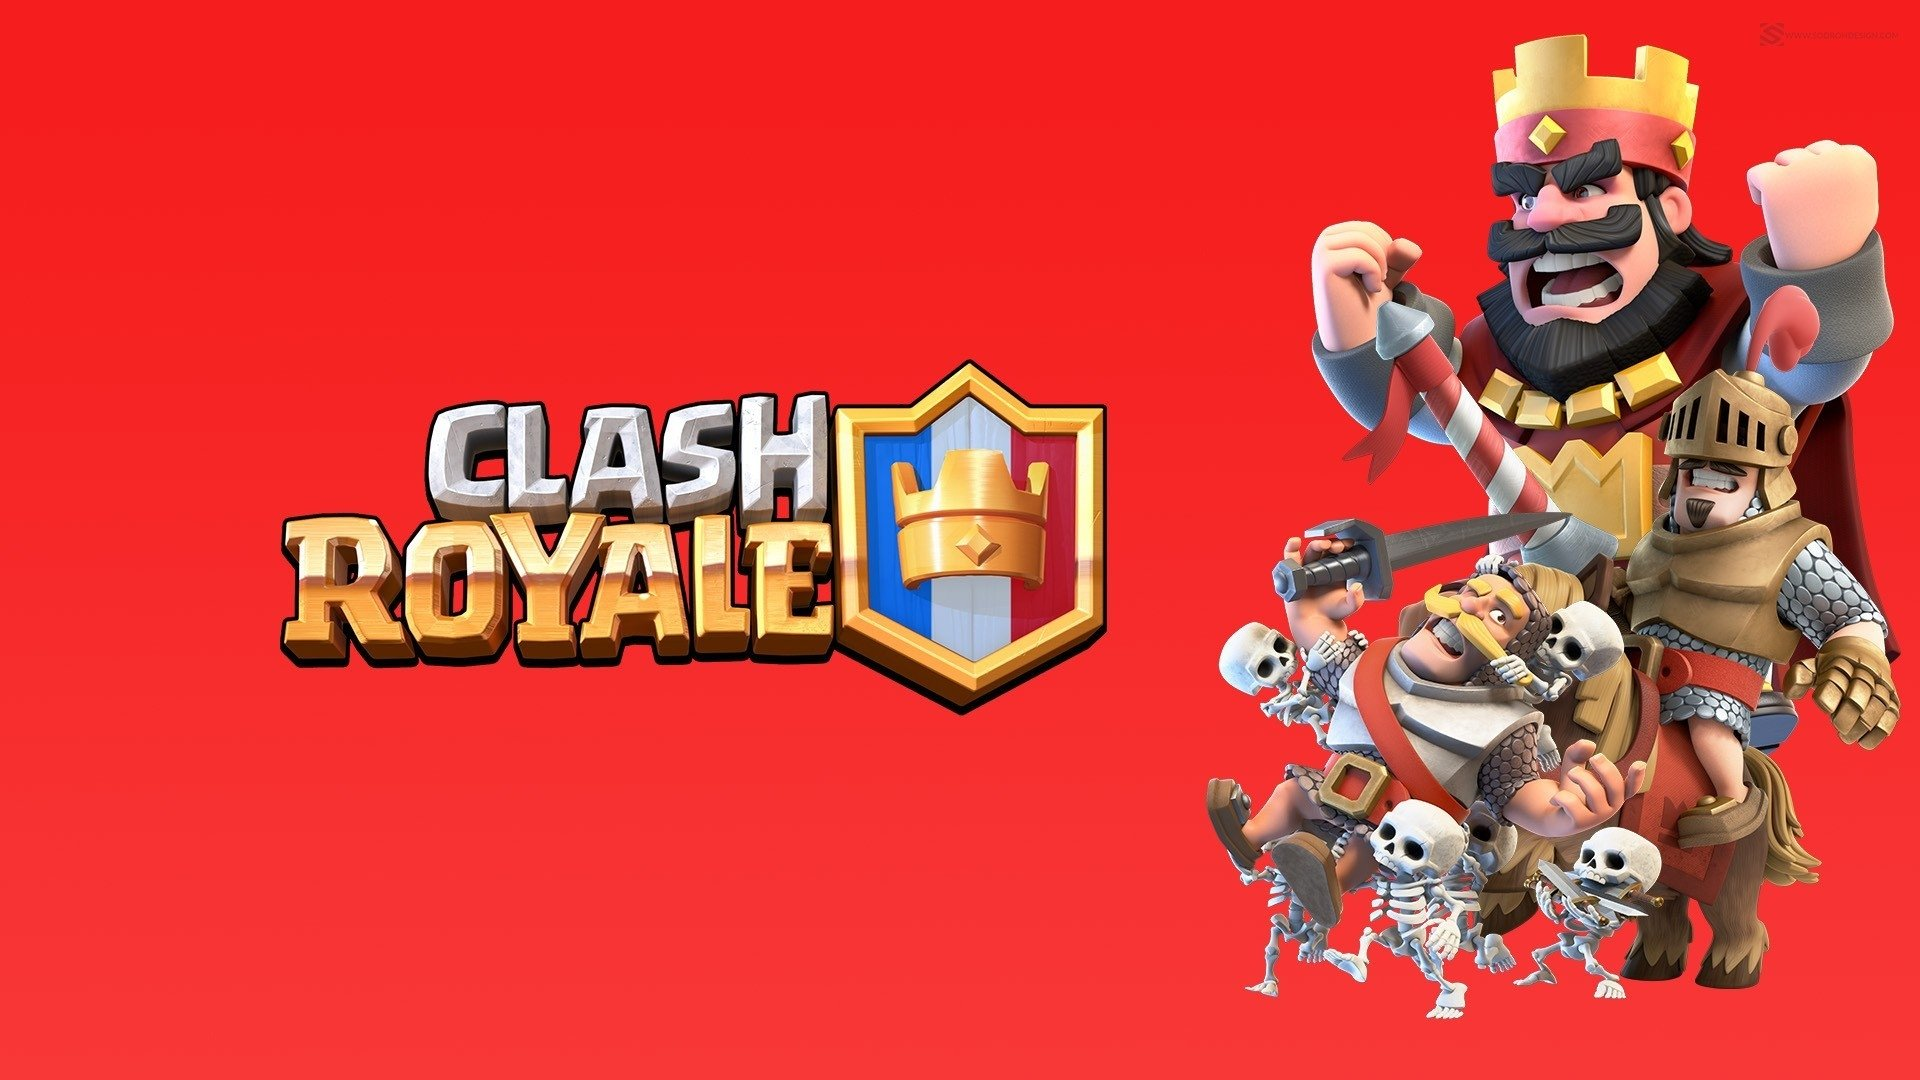 Clash royale hd wallpaper background image 1920x1080 id 859627 wallpaper abyss - Clash royale 2560x1440 ...